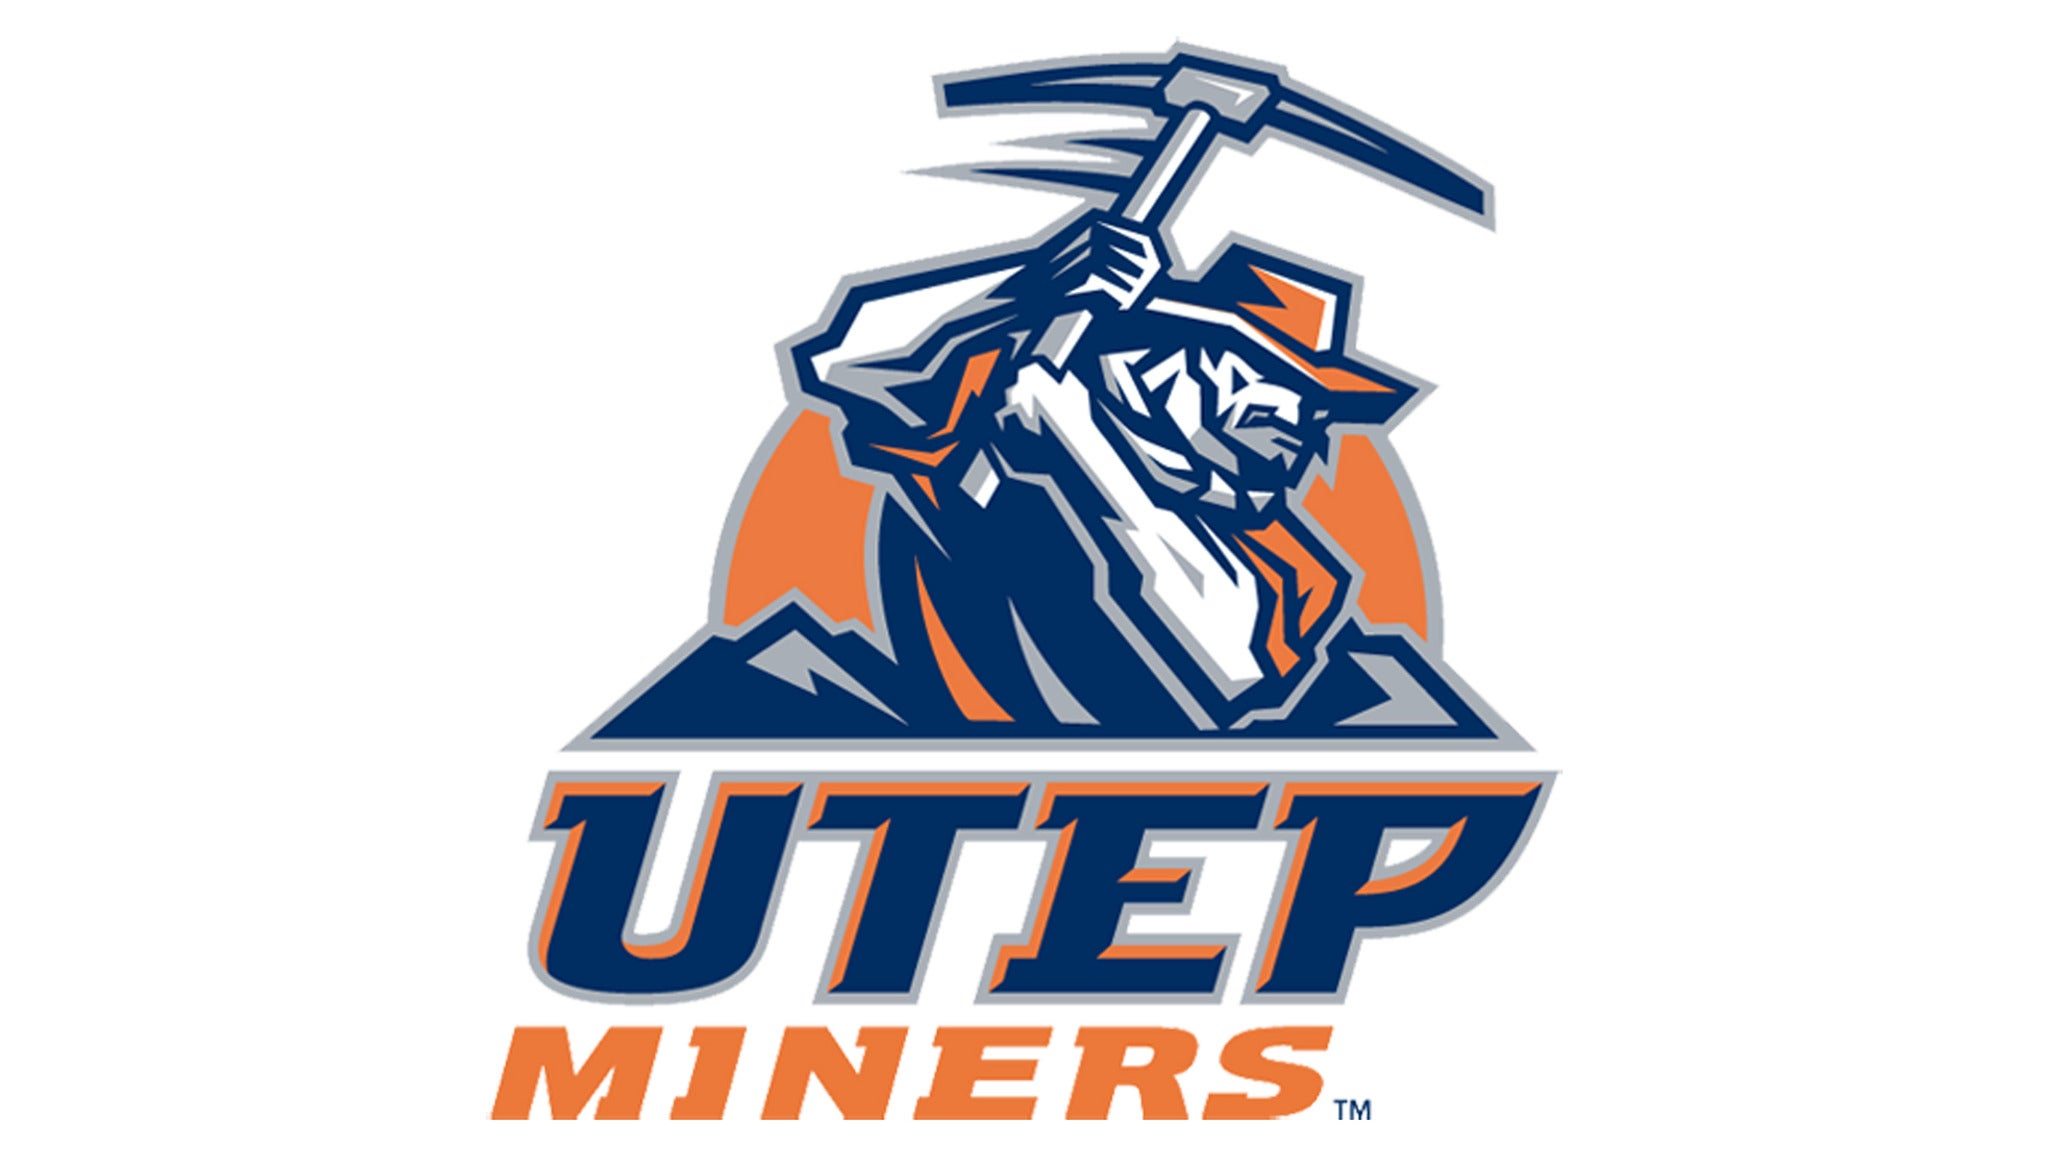 UTEP Miners Mens Basketball